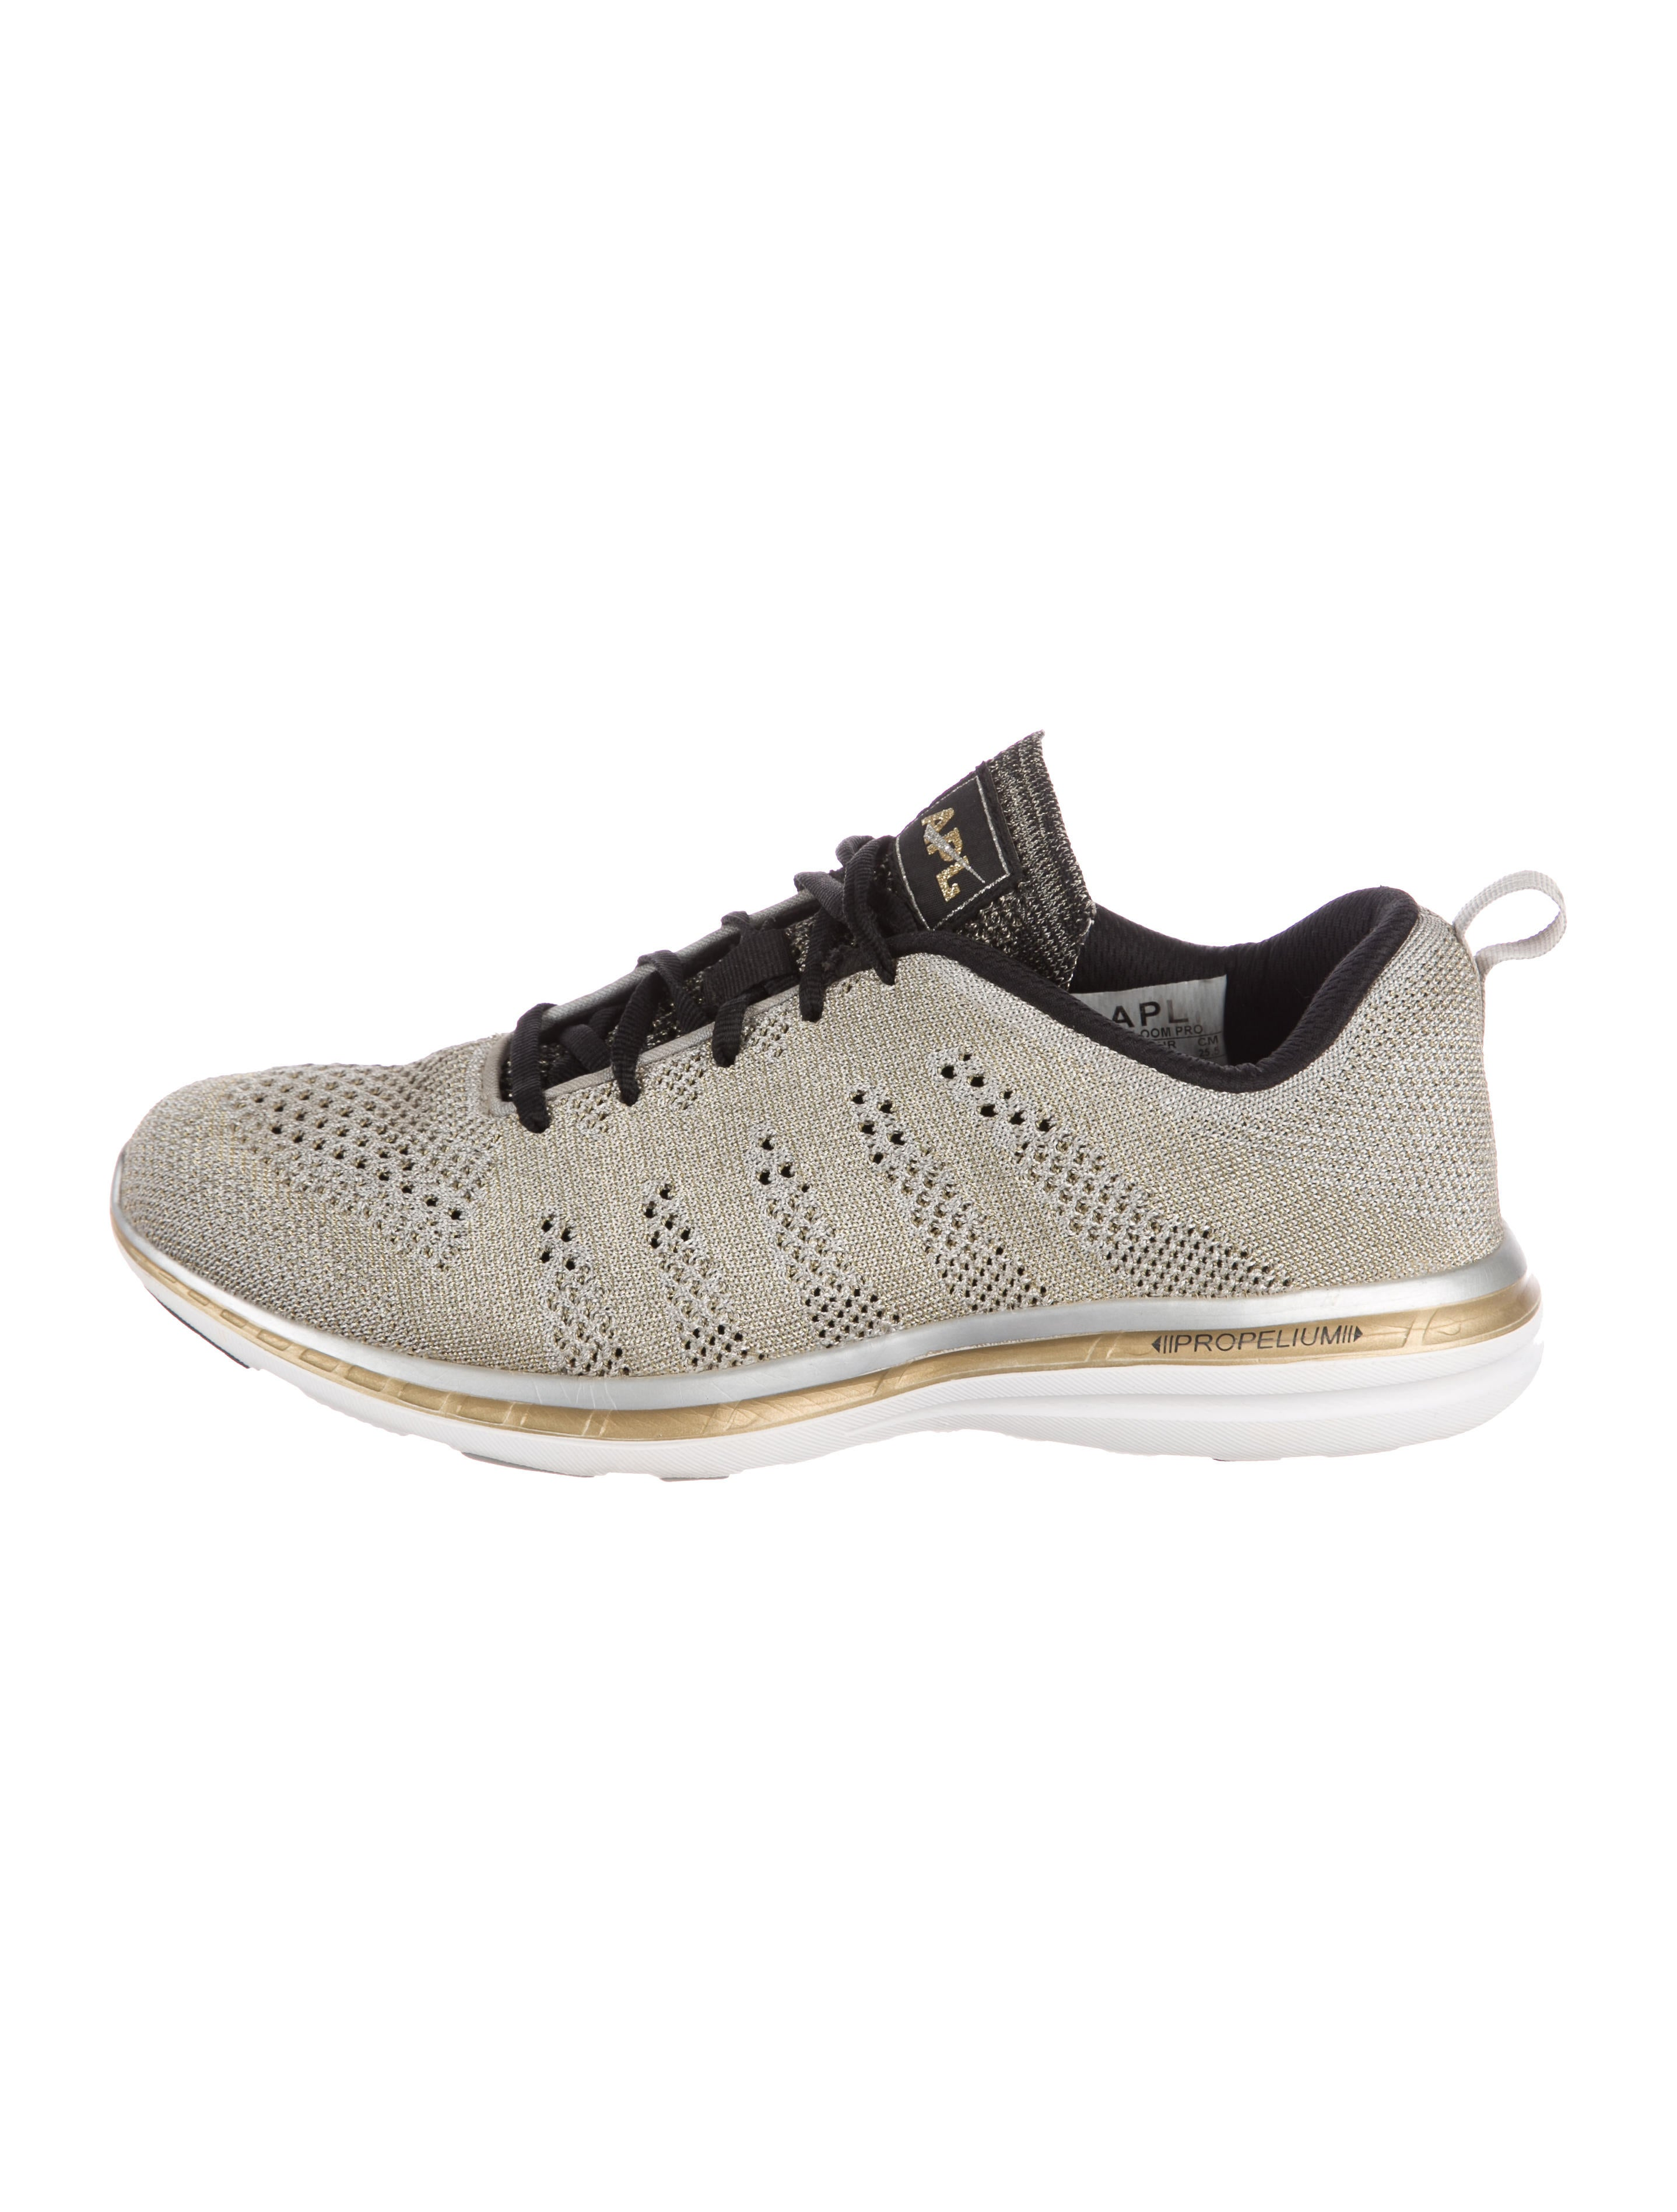 for cheap APL Techloom Pro Low-Top Sneakers cheap sale get authentic clearance visit Ba9d8B04